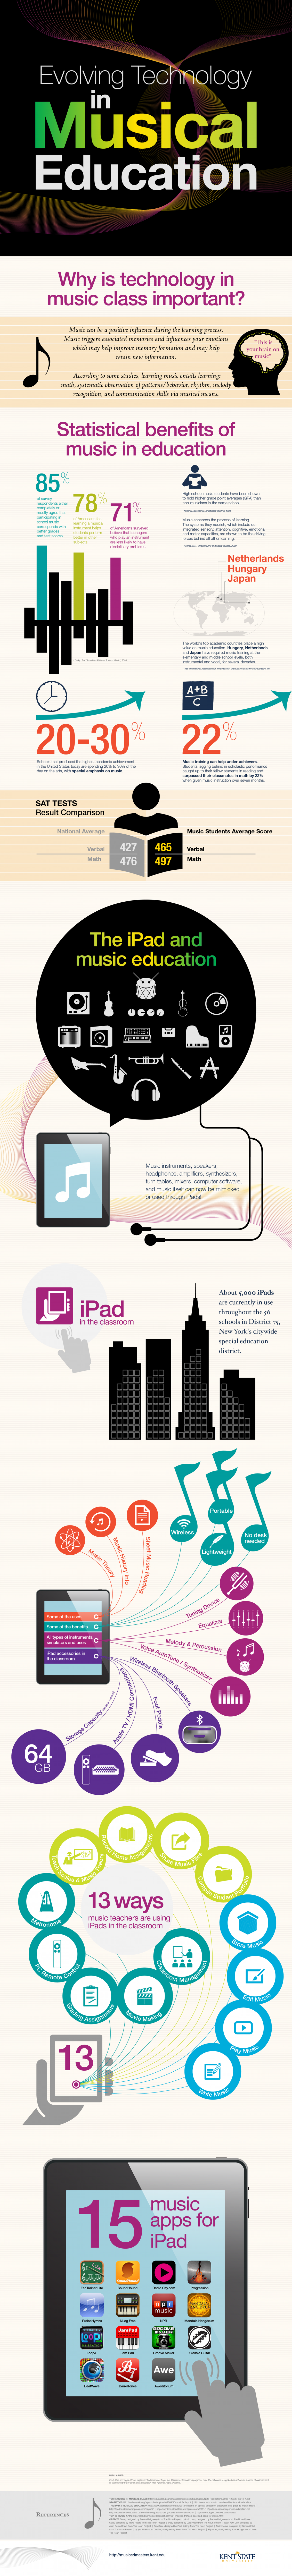 Evolving Technology in Musical Education Infographic